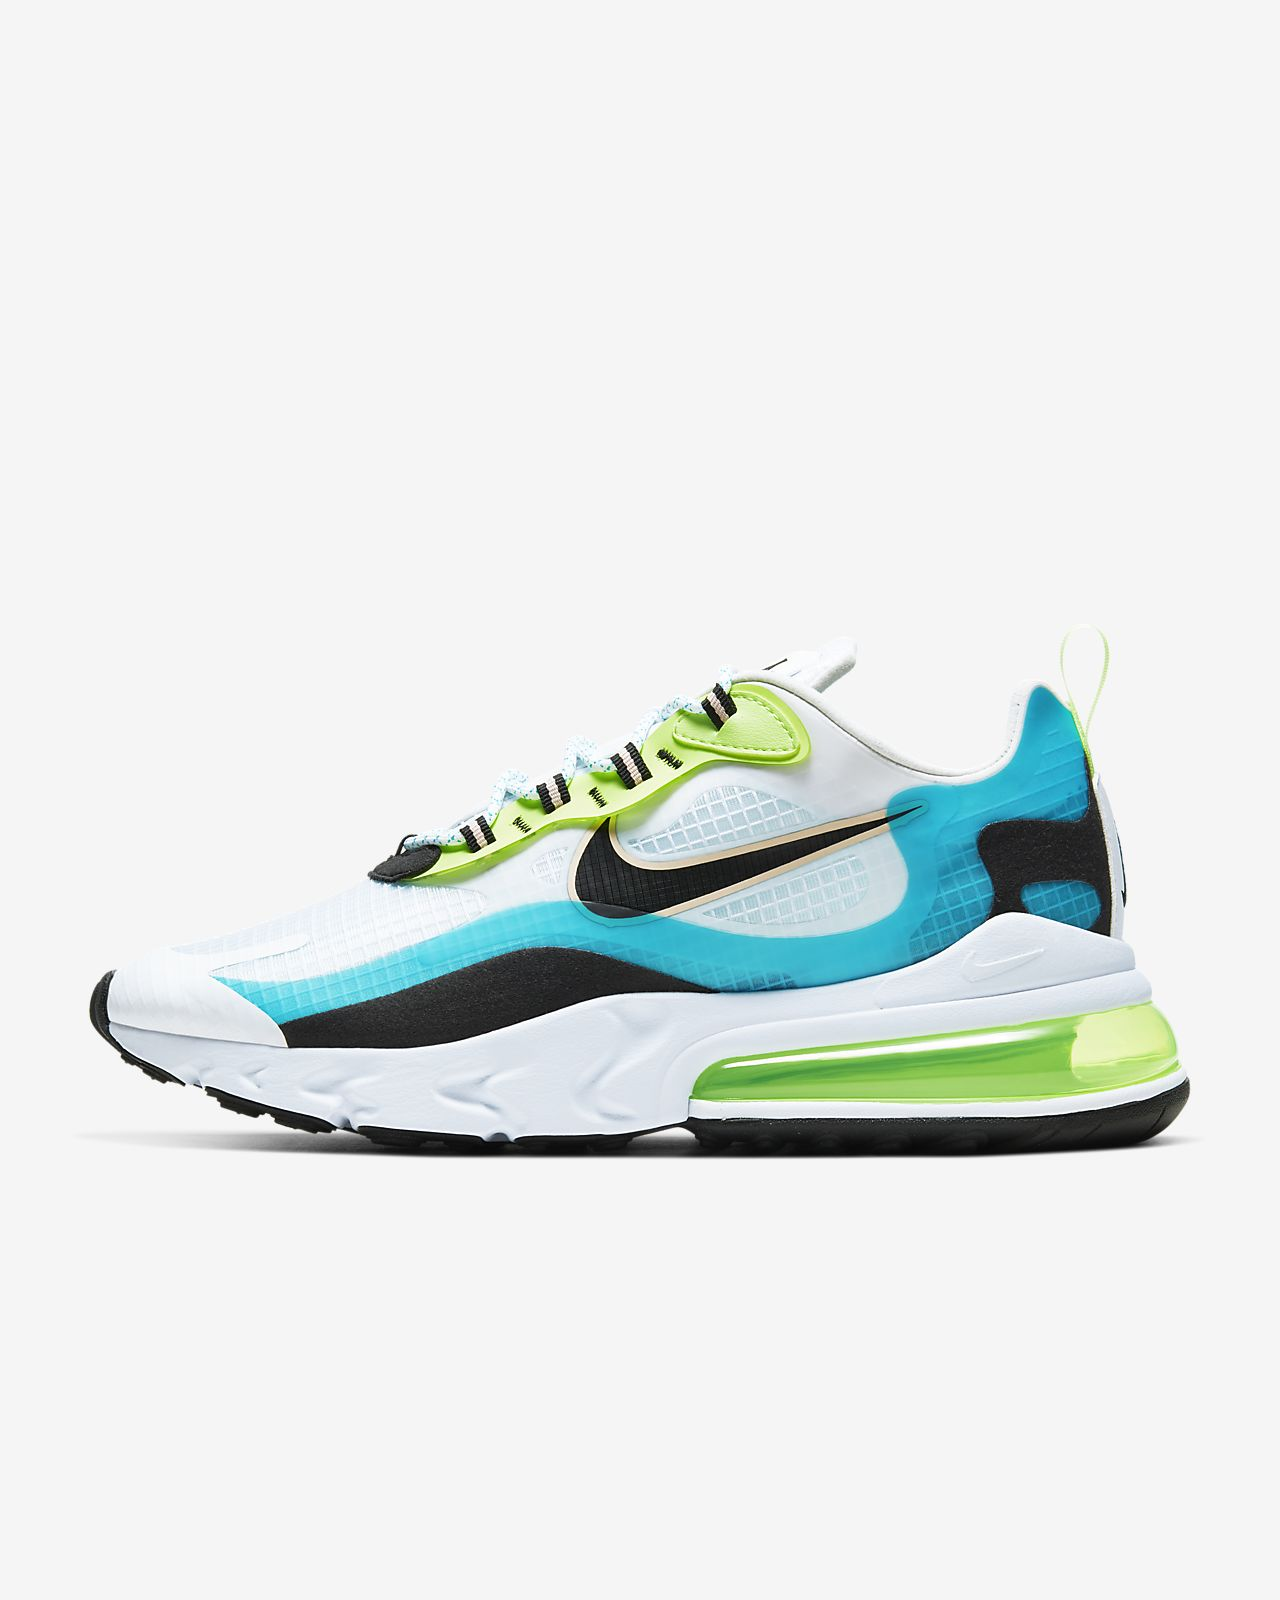 Chaussure Nike Air Max 270 React SE pour Homme